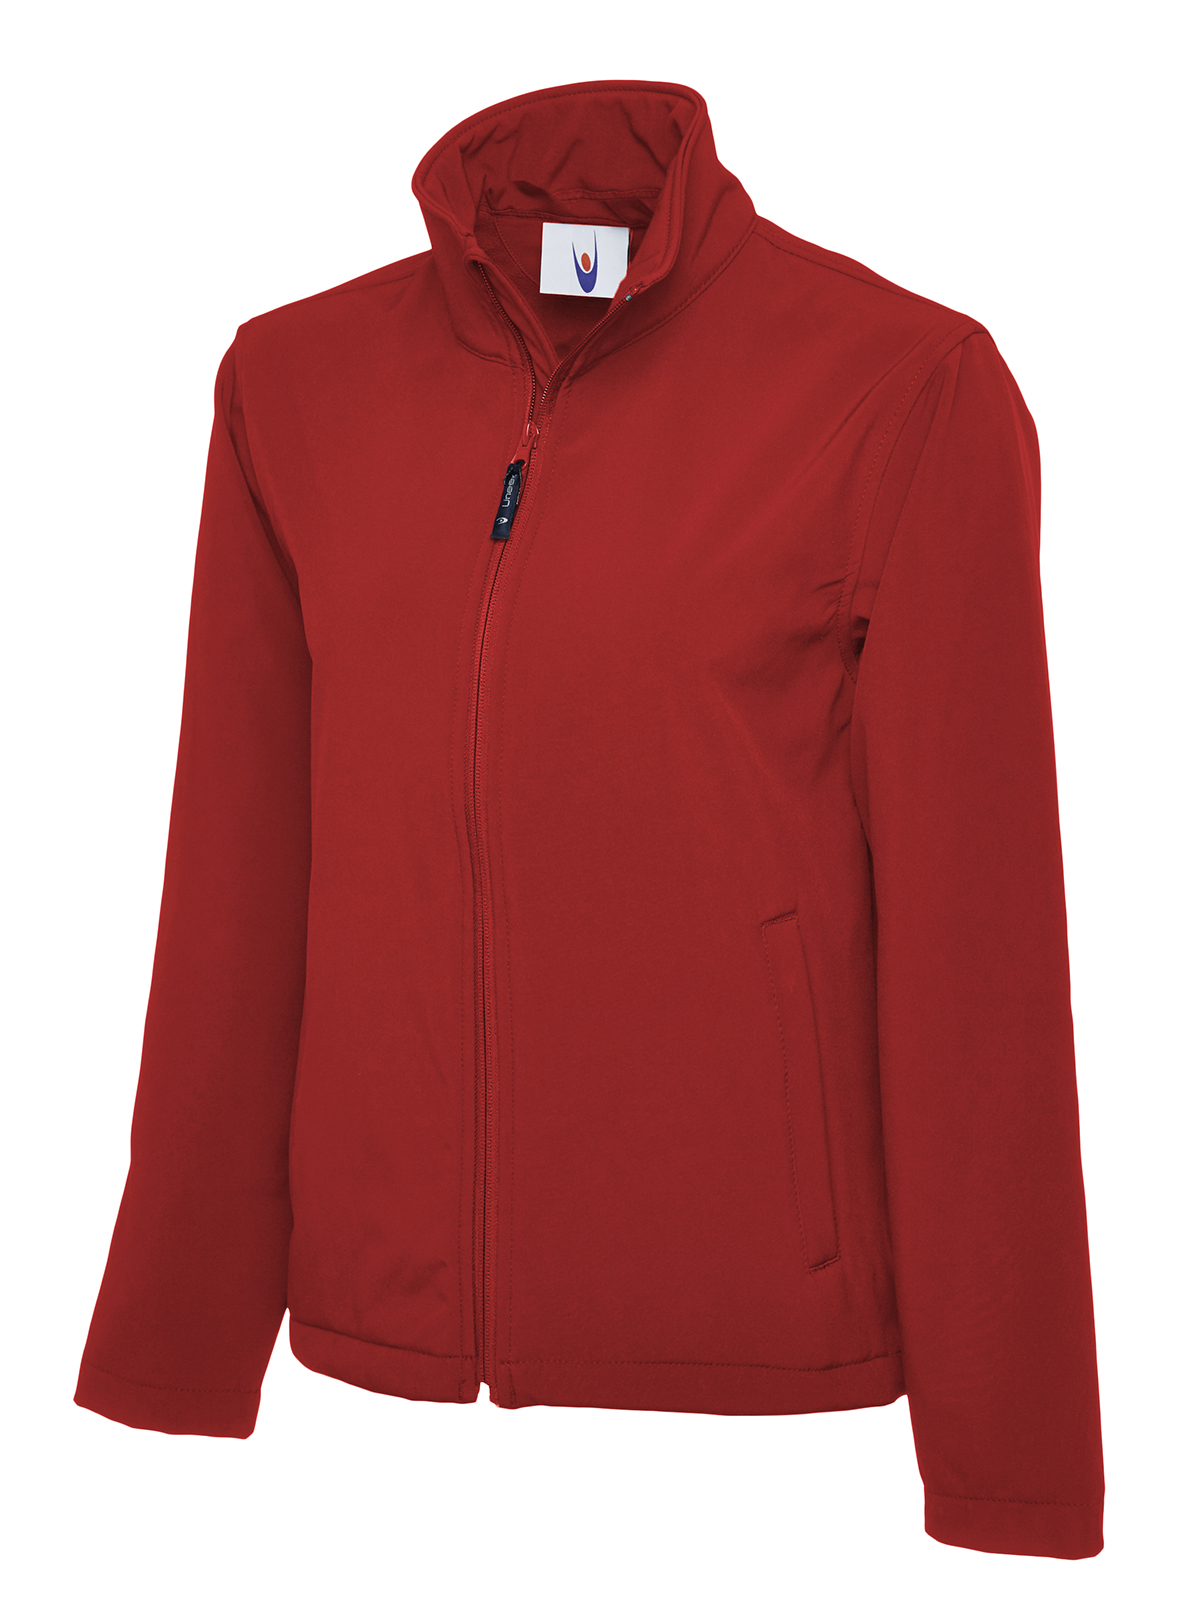 Uneek UC612 Classic Full Zip Soft-shell Jacket